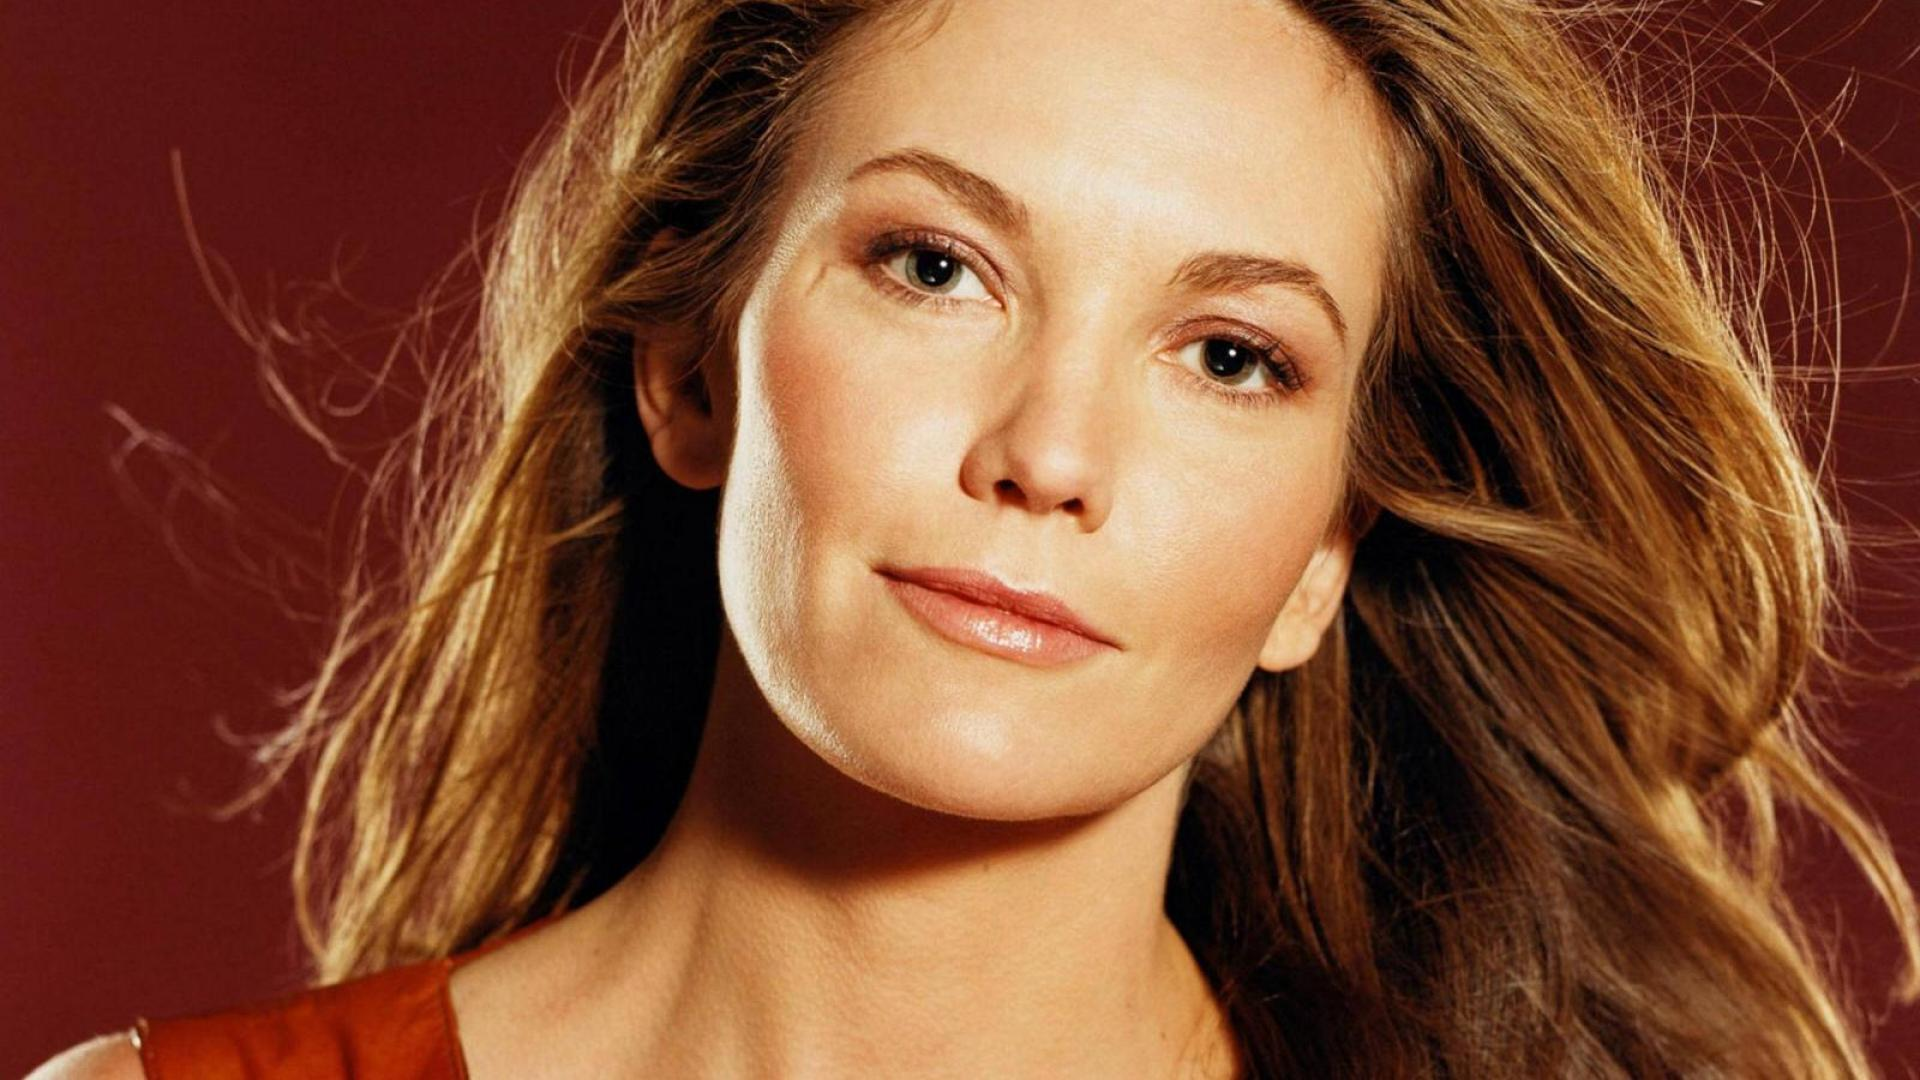 Diane lane face wallpapers